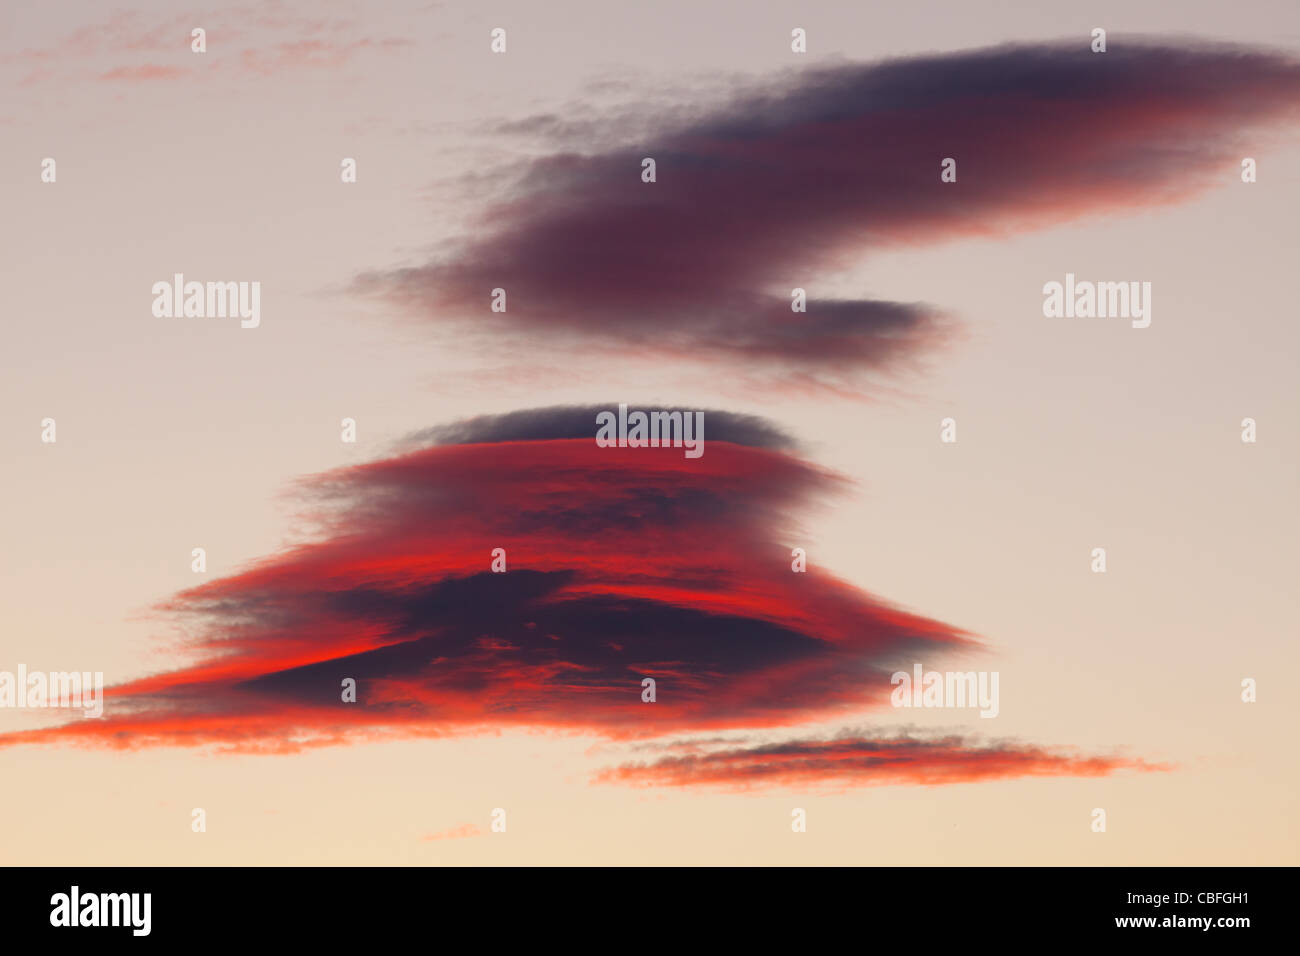 Strange formation of clouds at sunset - Stock Image